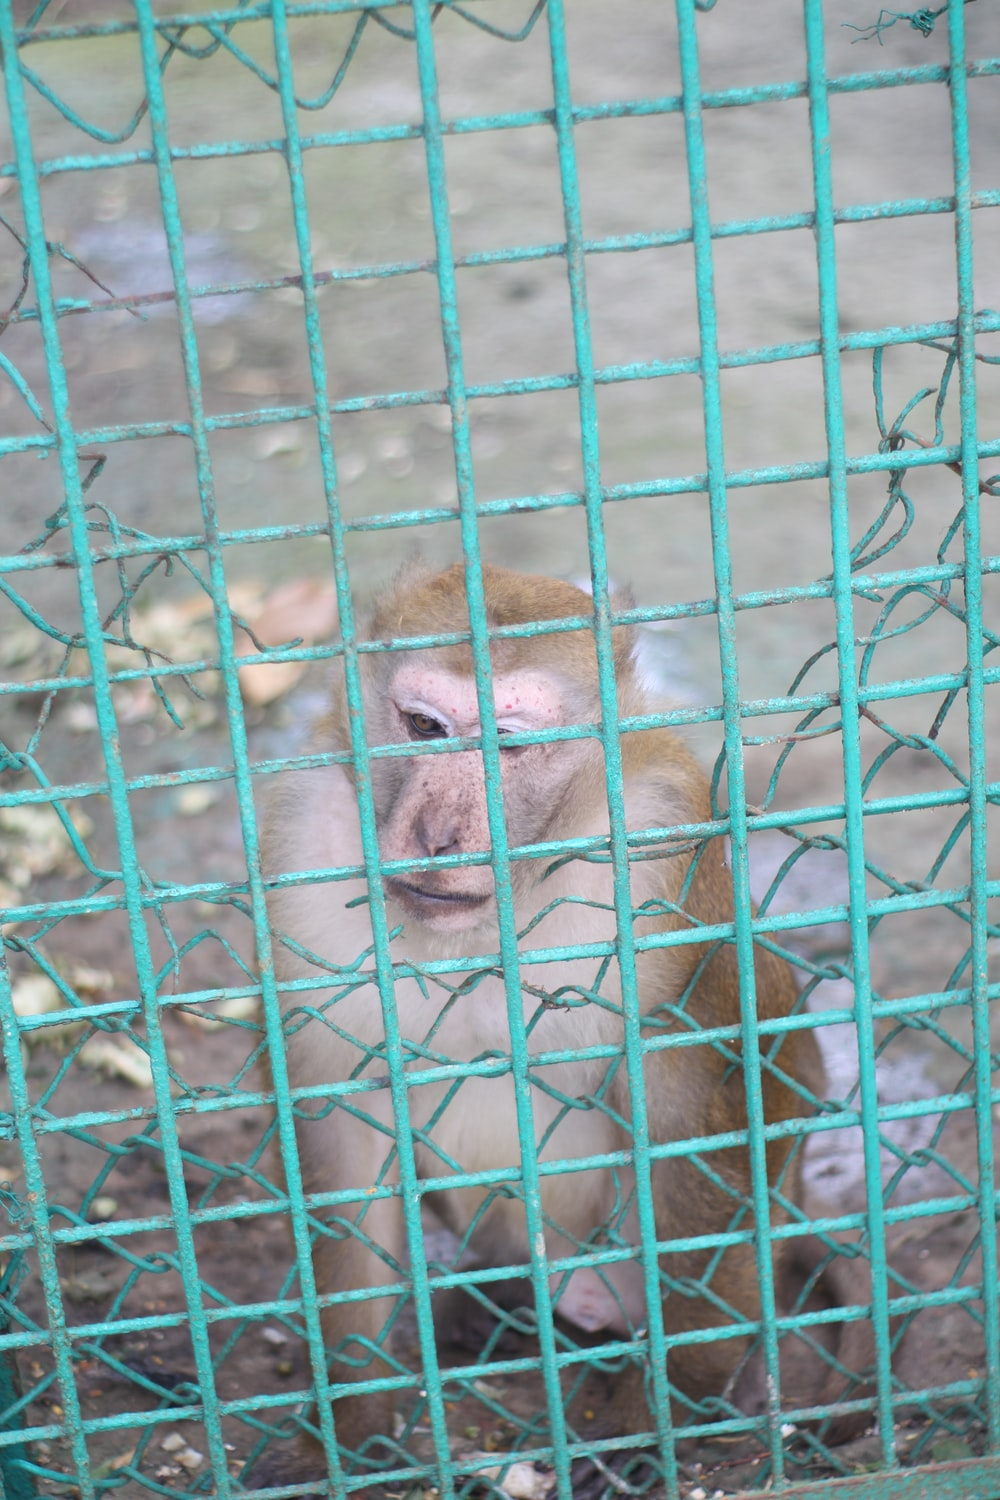 monkey in cage during daytime